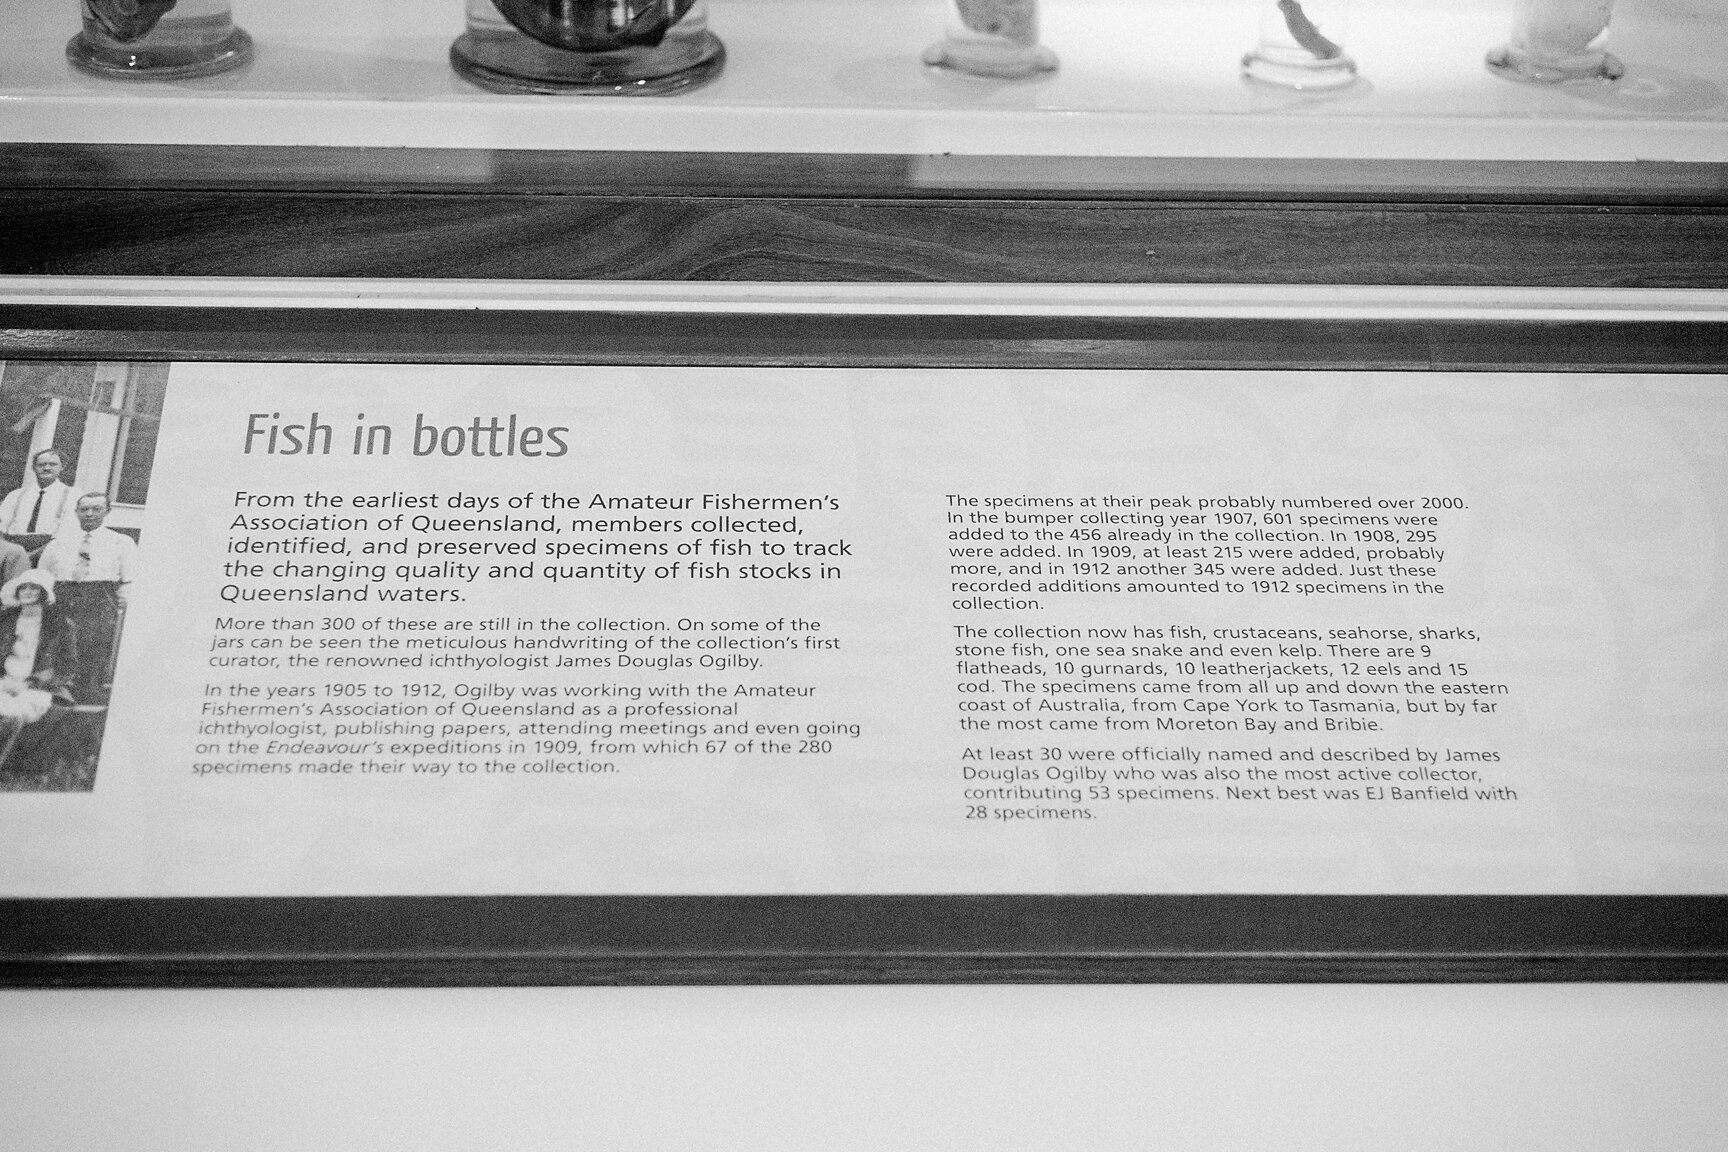 Fish in bottles  From the earliest days of the Amateur Fishermen's Association of Queensland, members collected, identified, and preserved specimens of fish to track the changing quality and quantity of fish stocks in Queensland waters.  More than 300 of these are still in the collection. On some of the jars can be seen the meticulous handwriting of the collection's first curator, the renowned ichthyologist James Douglas Ogilby.  In the years 1905 to 1912, Ogilby was working with the Amateur Fishermen's Association of Queensland as a professional ichthyologist, publishing papers, attending meetings and even going on the  Endeavour's  expeditions in 1909, from which 67 of the 280 specimens made their way to the collection.  The specimens at their peak probably numbered over 2000. In the bumper collecting year 1907, 601 specimens were added to the 456 already in the collection. In 1908, 295 were added. In 1909, at least 215 were added, probably more, and in 1912 another 345 were added. Just these recorded additions amounted to 1912 specimens in the collection.  This collection now has fish, crustaceans, seahorse, sharks, stone fish, one sea snake and even kelp. There are 9 flatheads, 10 gurnards, 10 leatherjackets, 12 eels and 15 cod. The specimens came from all up and down the eastern coast of Australia, from Cape York to Tasmania, but by far the most came from Moreton Bay and Bribie.  At least 30 were officially names and described by James Douglas Ogilby who was also the most active collector, contributing 53 specimens. Next best was EJ Banfield with 28 specimens.